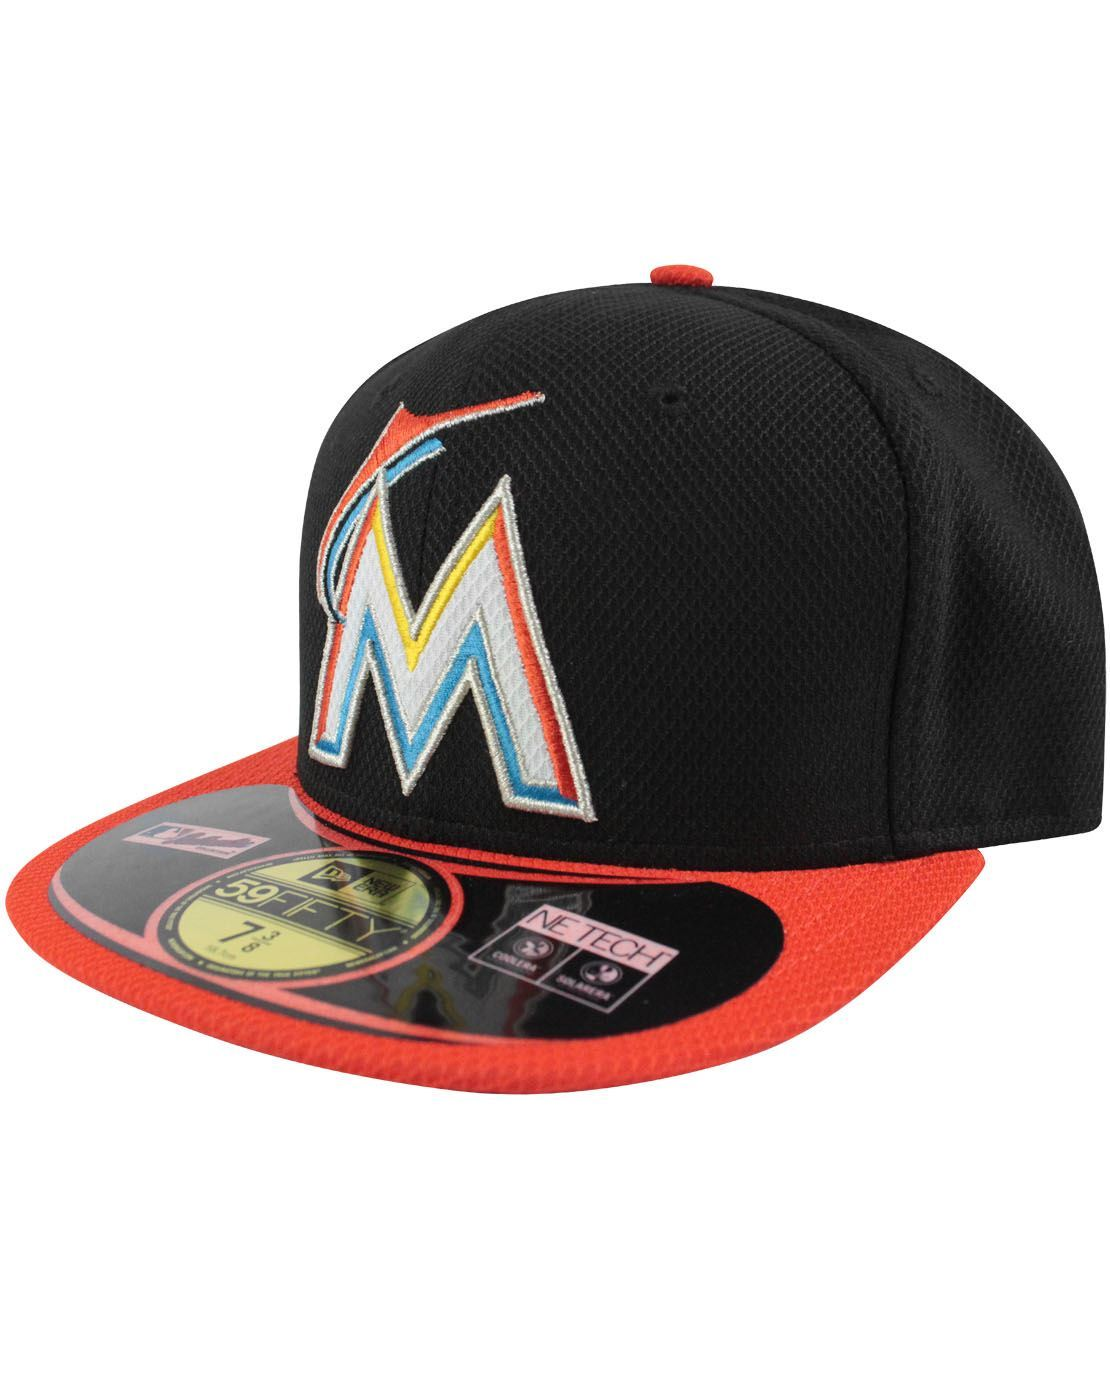 New Era 59Fifty MLB Miami Marlins Cap – Vanilla Underground 09b082bab74c